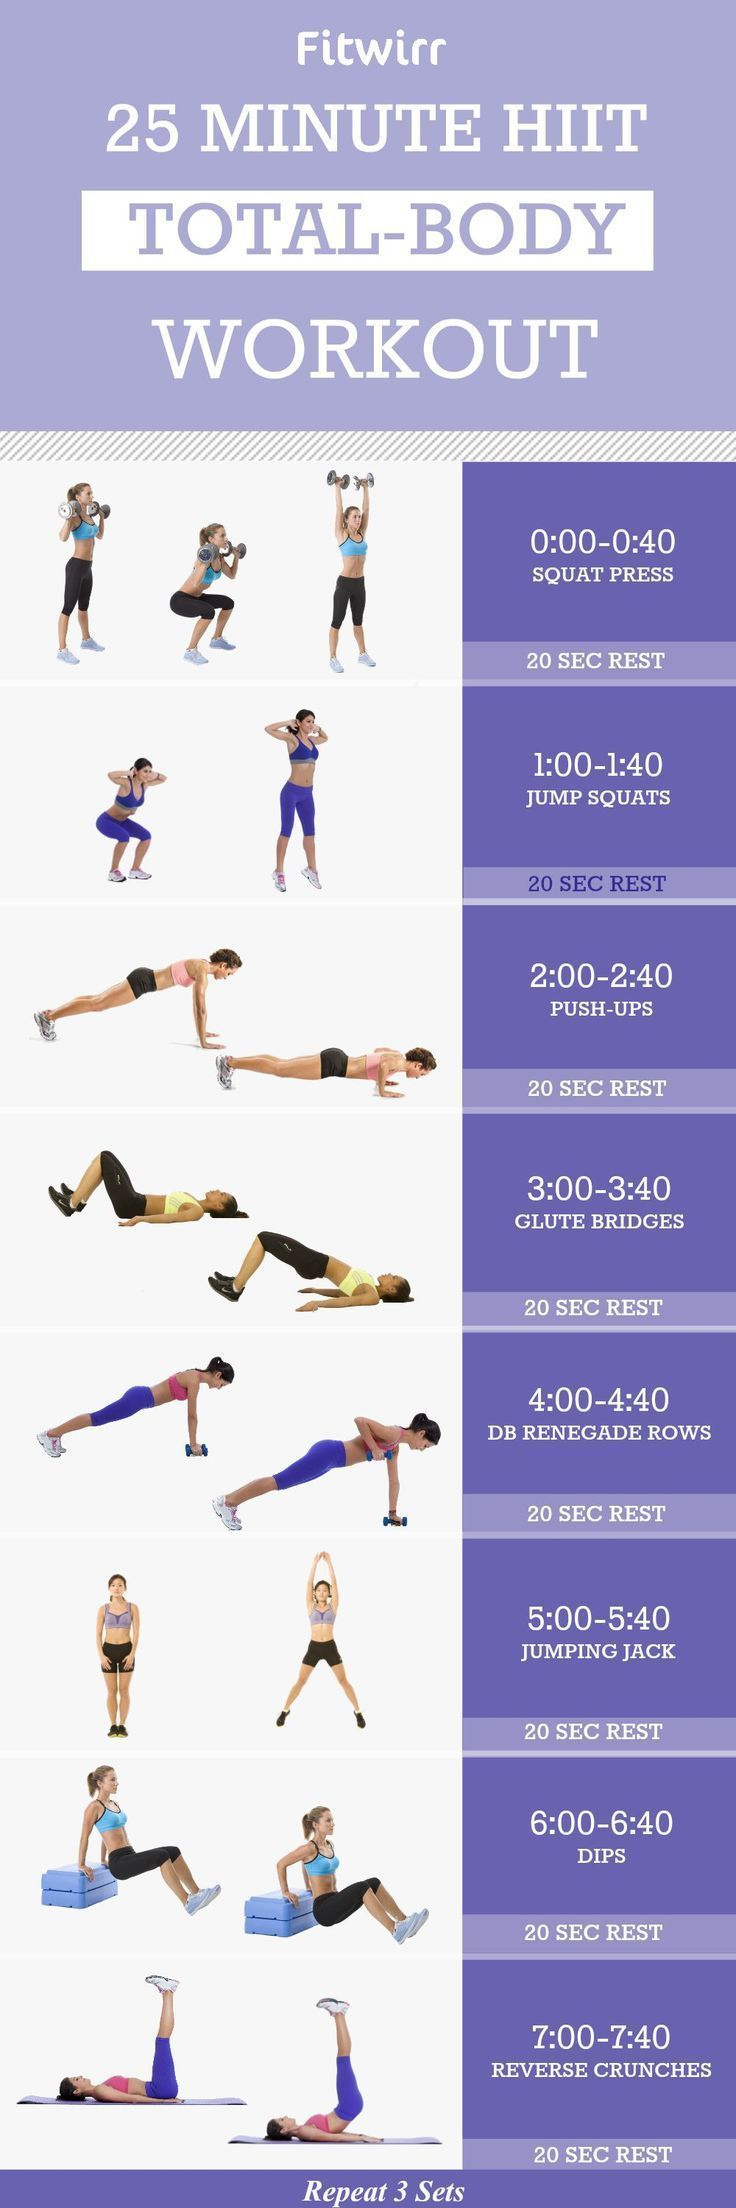 If you're looking to burn calories fast HITT is the way to go. With High-intensity interval training, you can workout less and gain more. Here's a 25 minute total-body HIIT-Workout to get you started. #HIIT